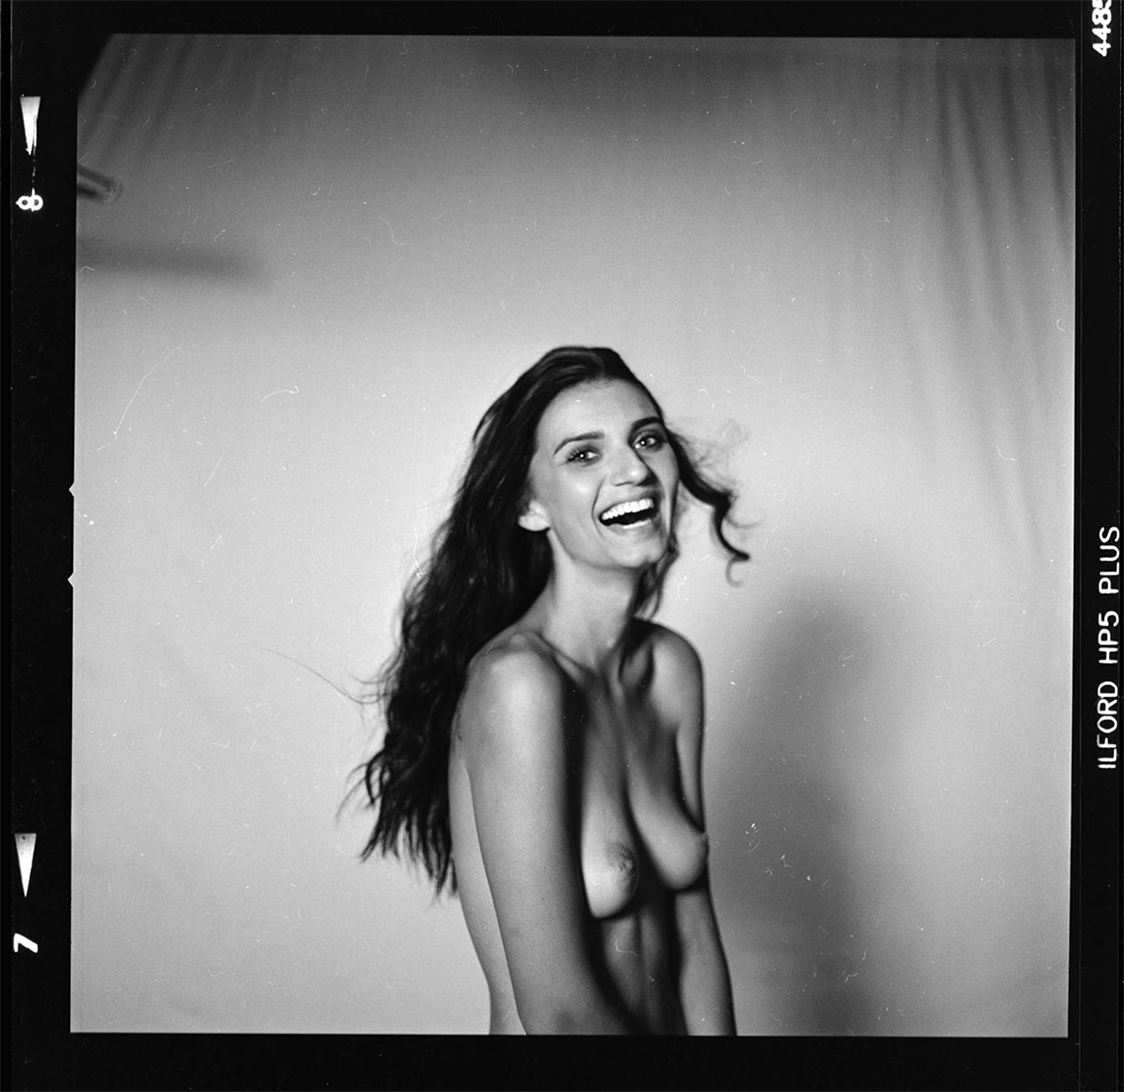 sexy Monique Batchelor naked by Hollis Hall